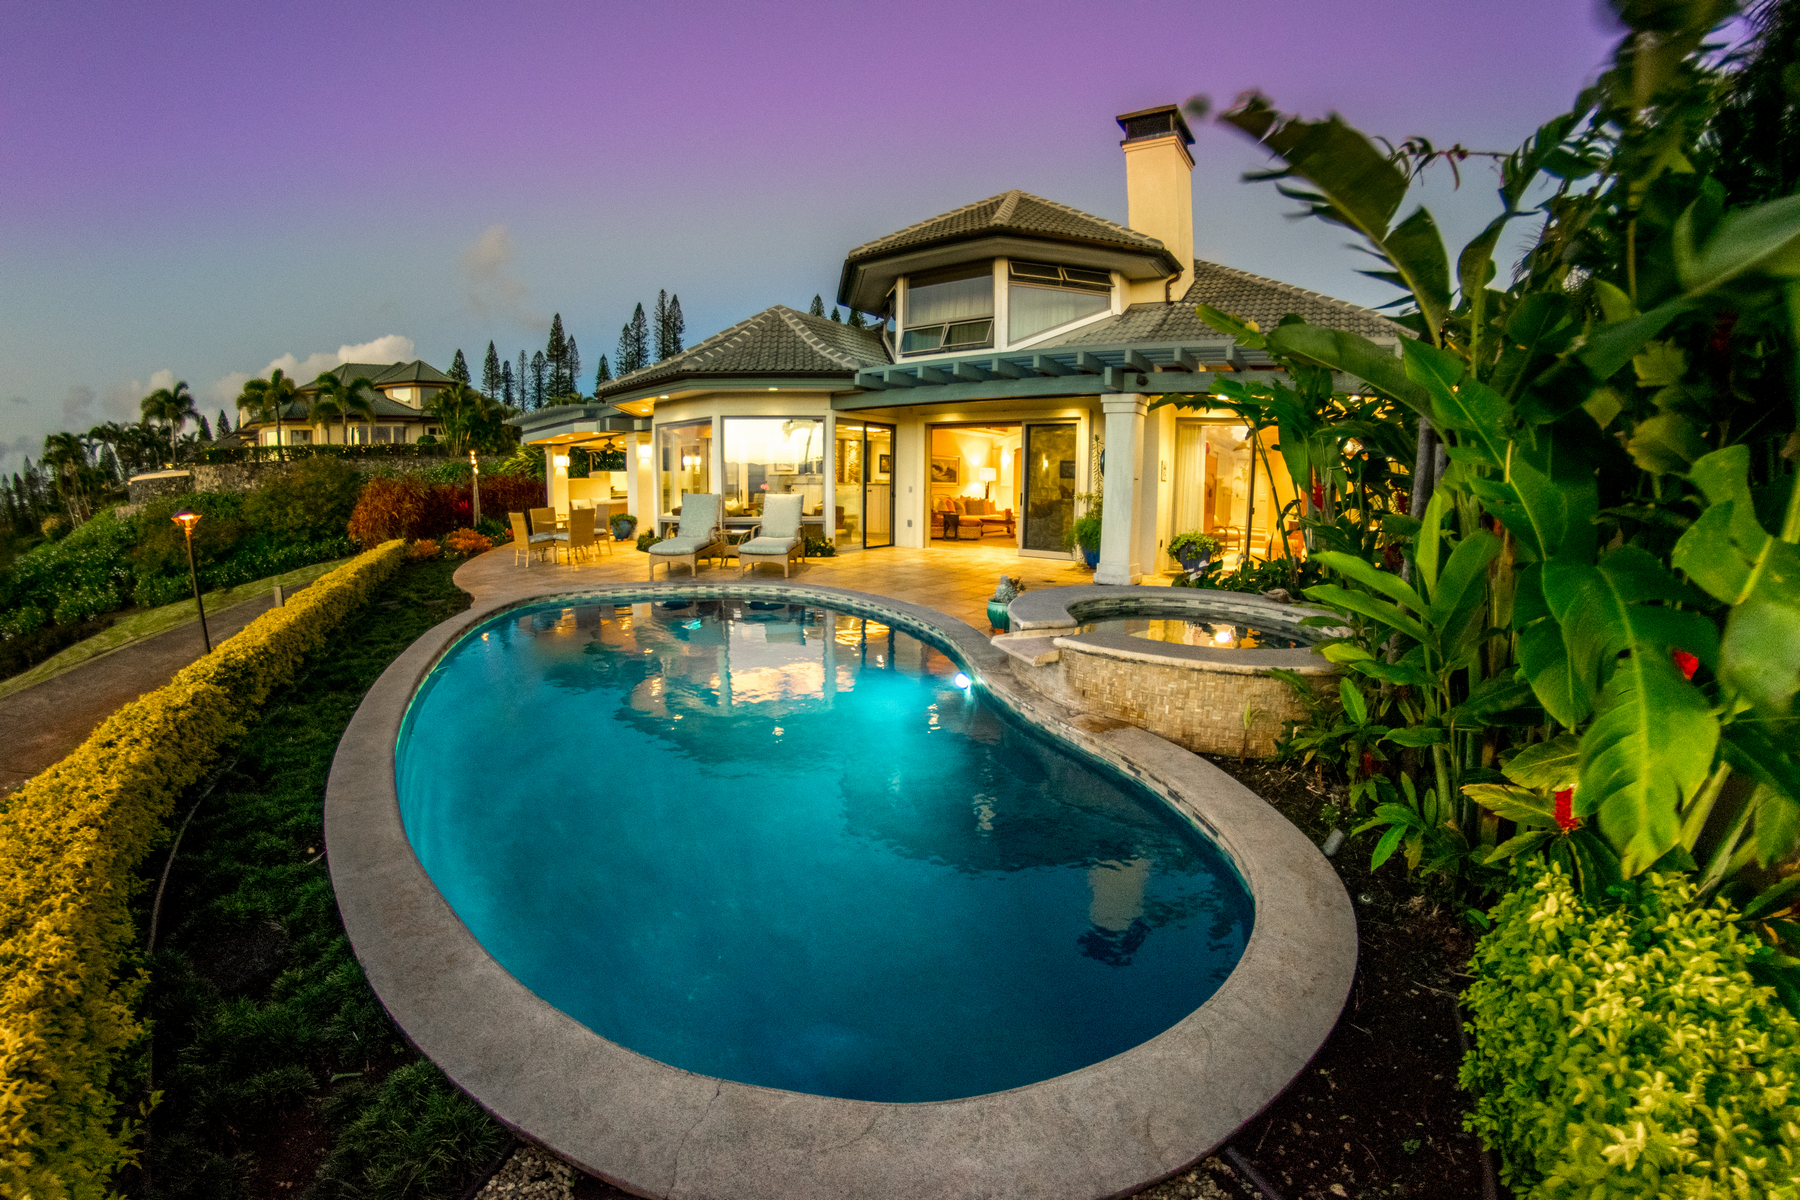 Single Family Home for Active at Live Pineapple Hill 600 Silversword Dr Kapalua, Hawaii 96761 United States